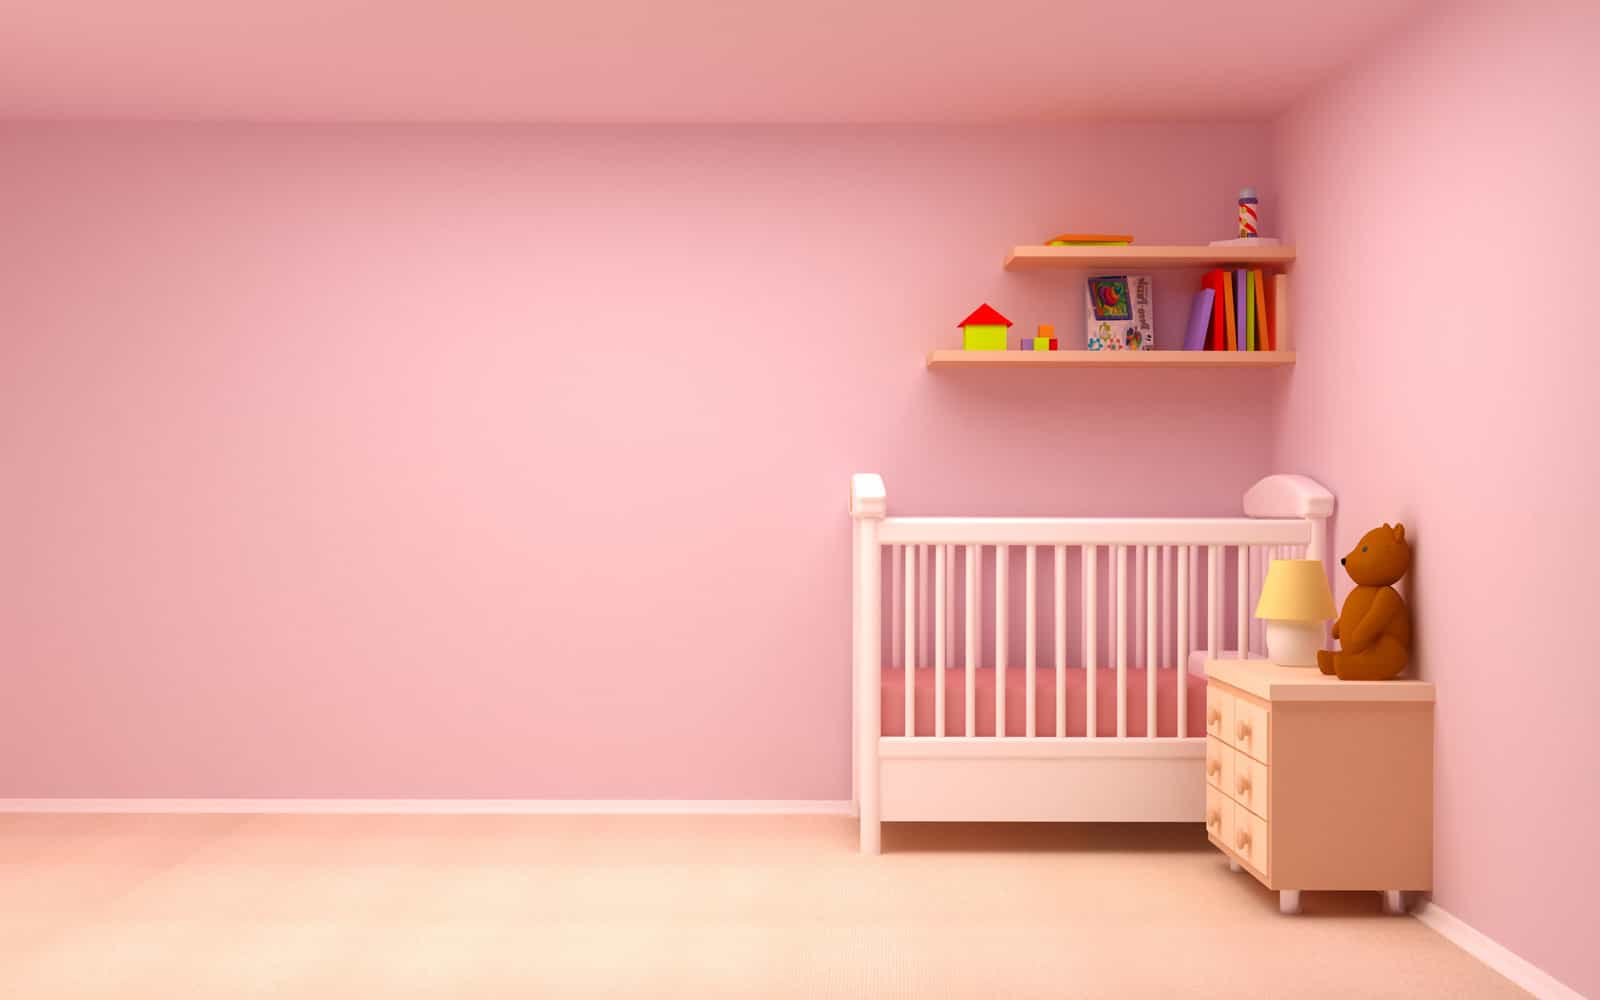 Minimalist Nursery Bedroom With Pink Wall Decor (Image 3 of 9)